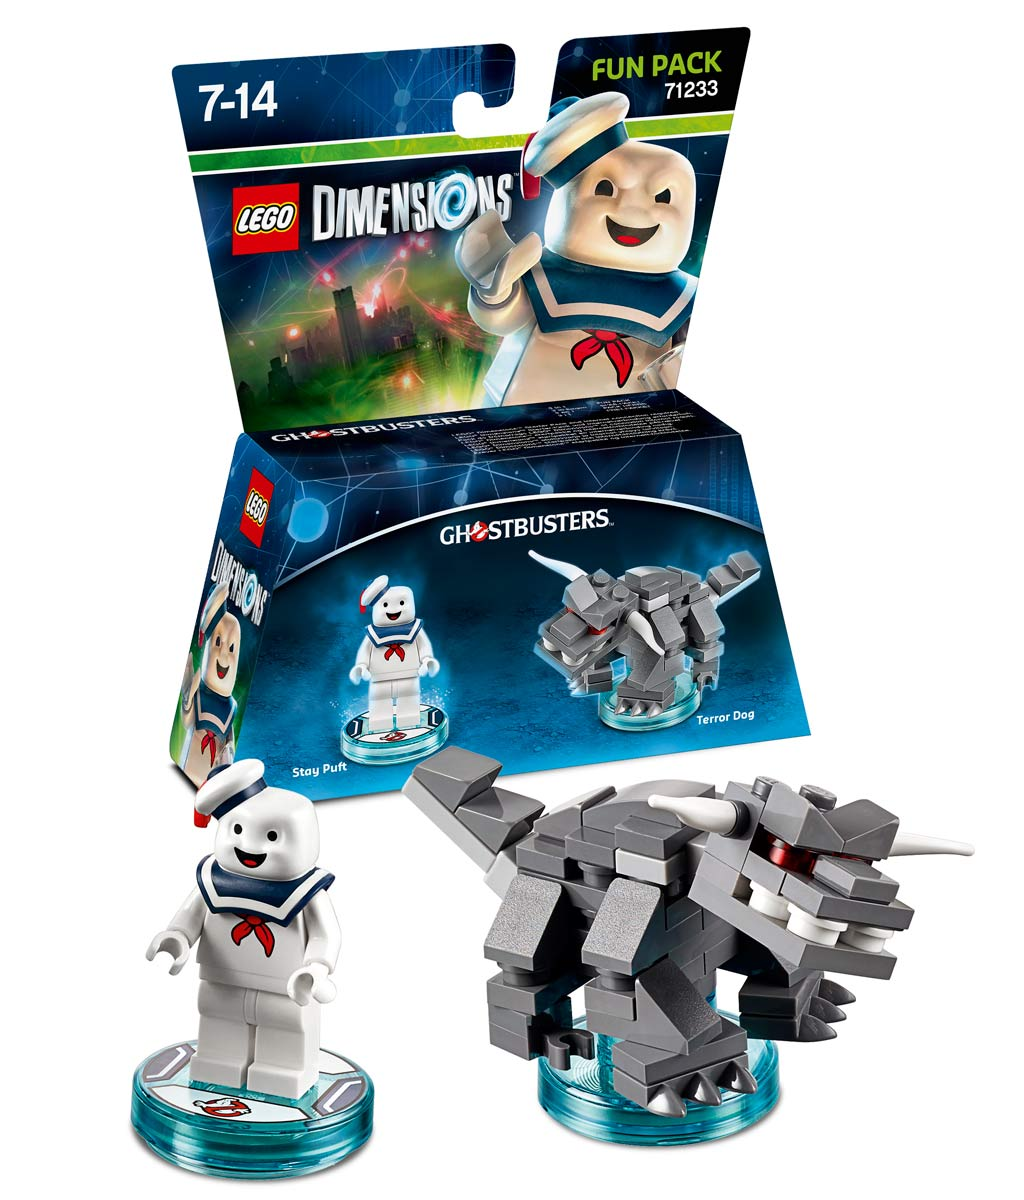 Stay Puft Marshmallow Man! | © Warner Bros. Interactive Entertainment